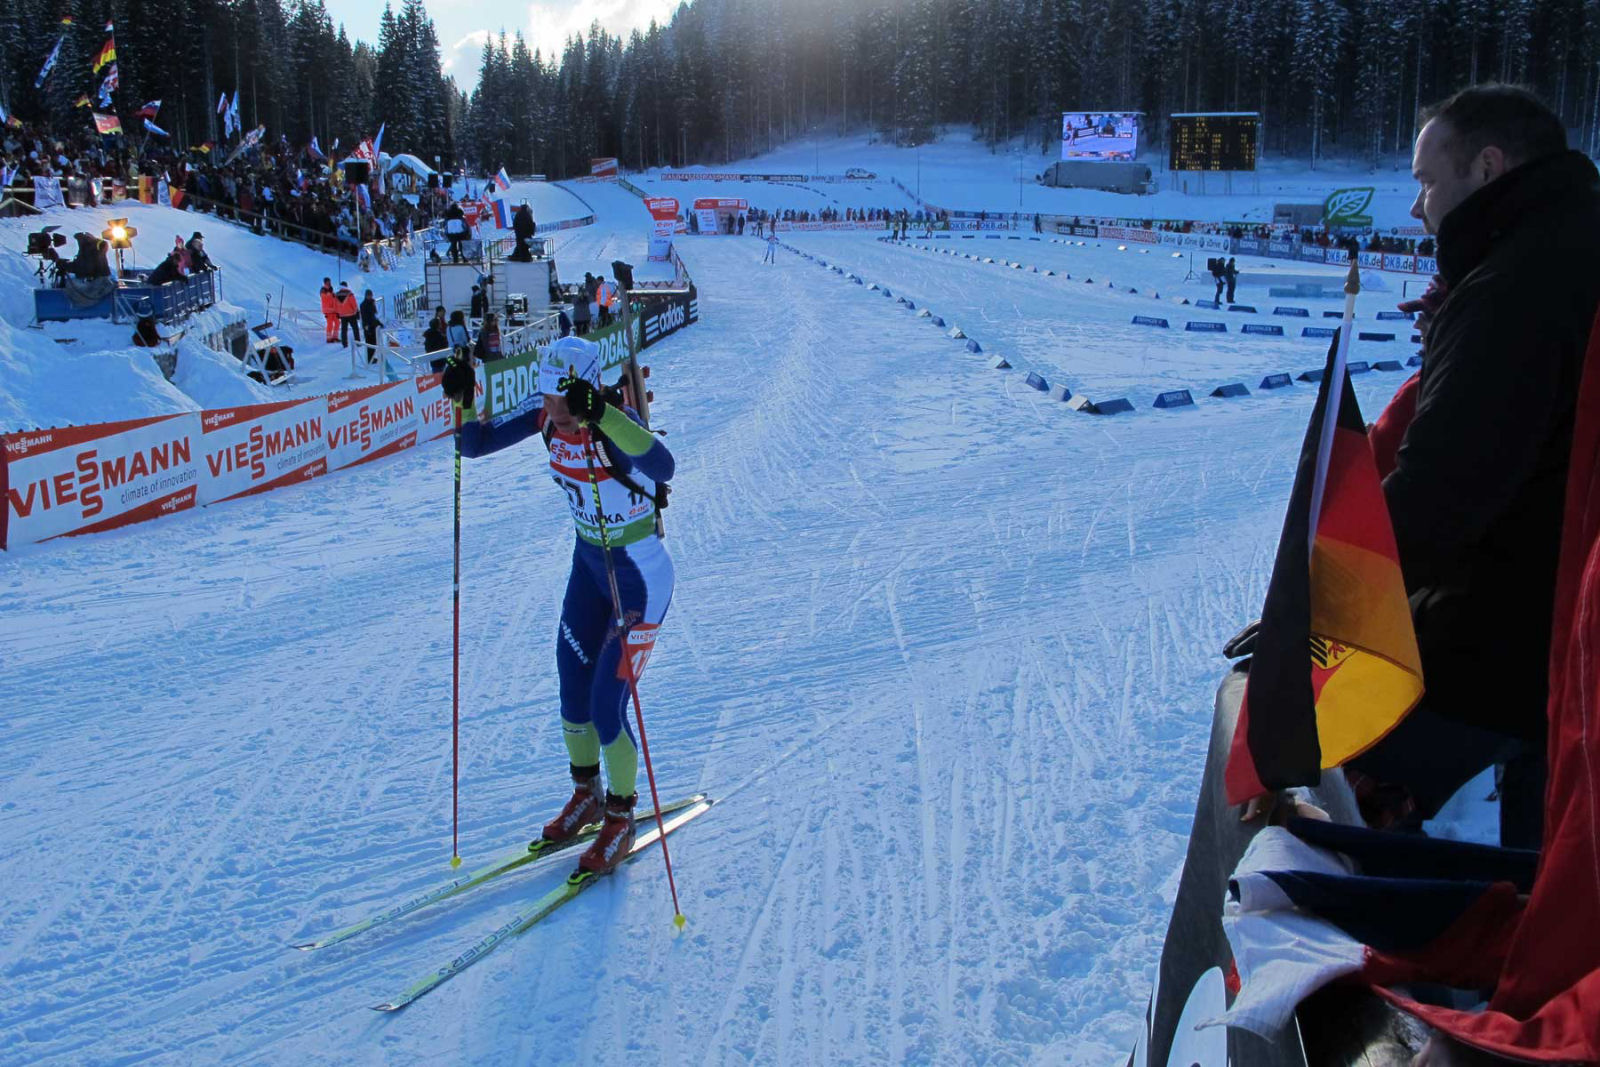 During the winter season Pokljuka turns into a very popular cross-country skiing and biathlon destination